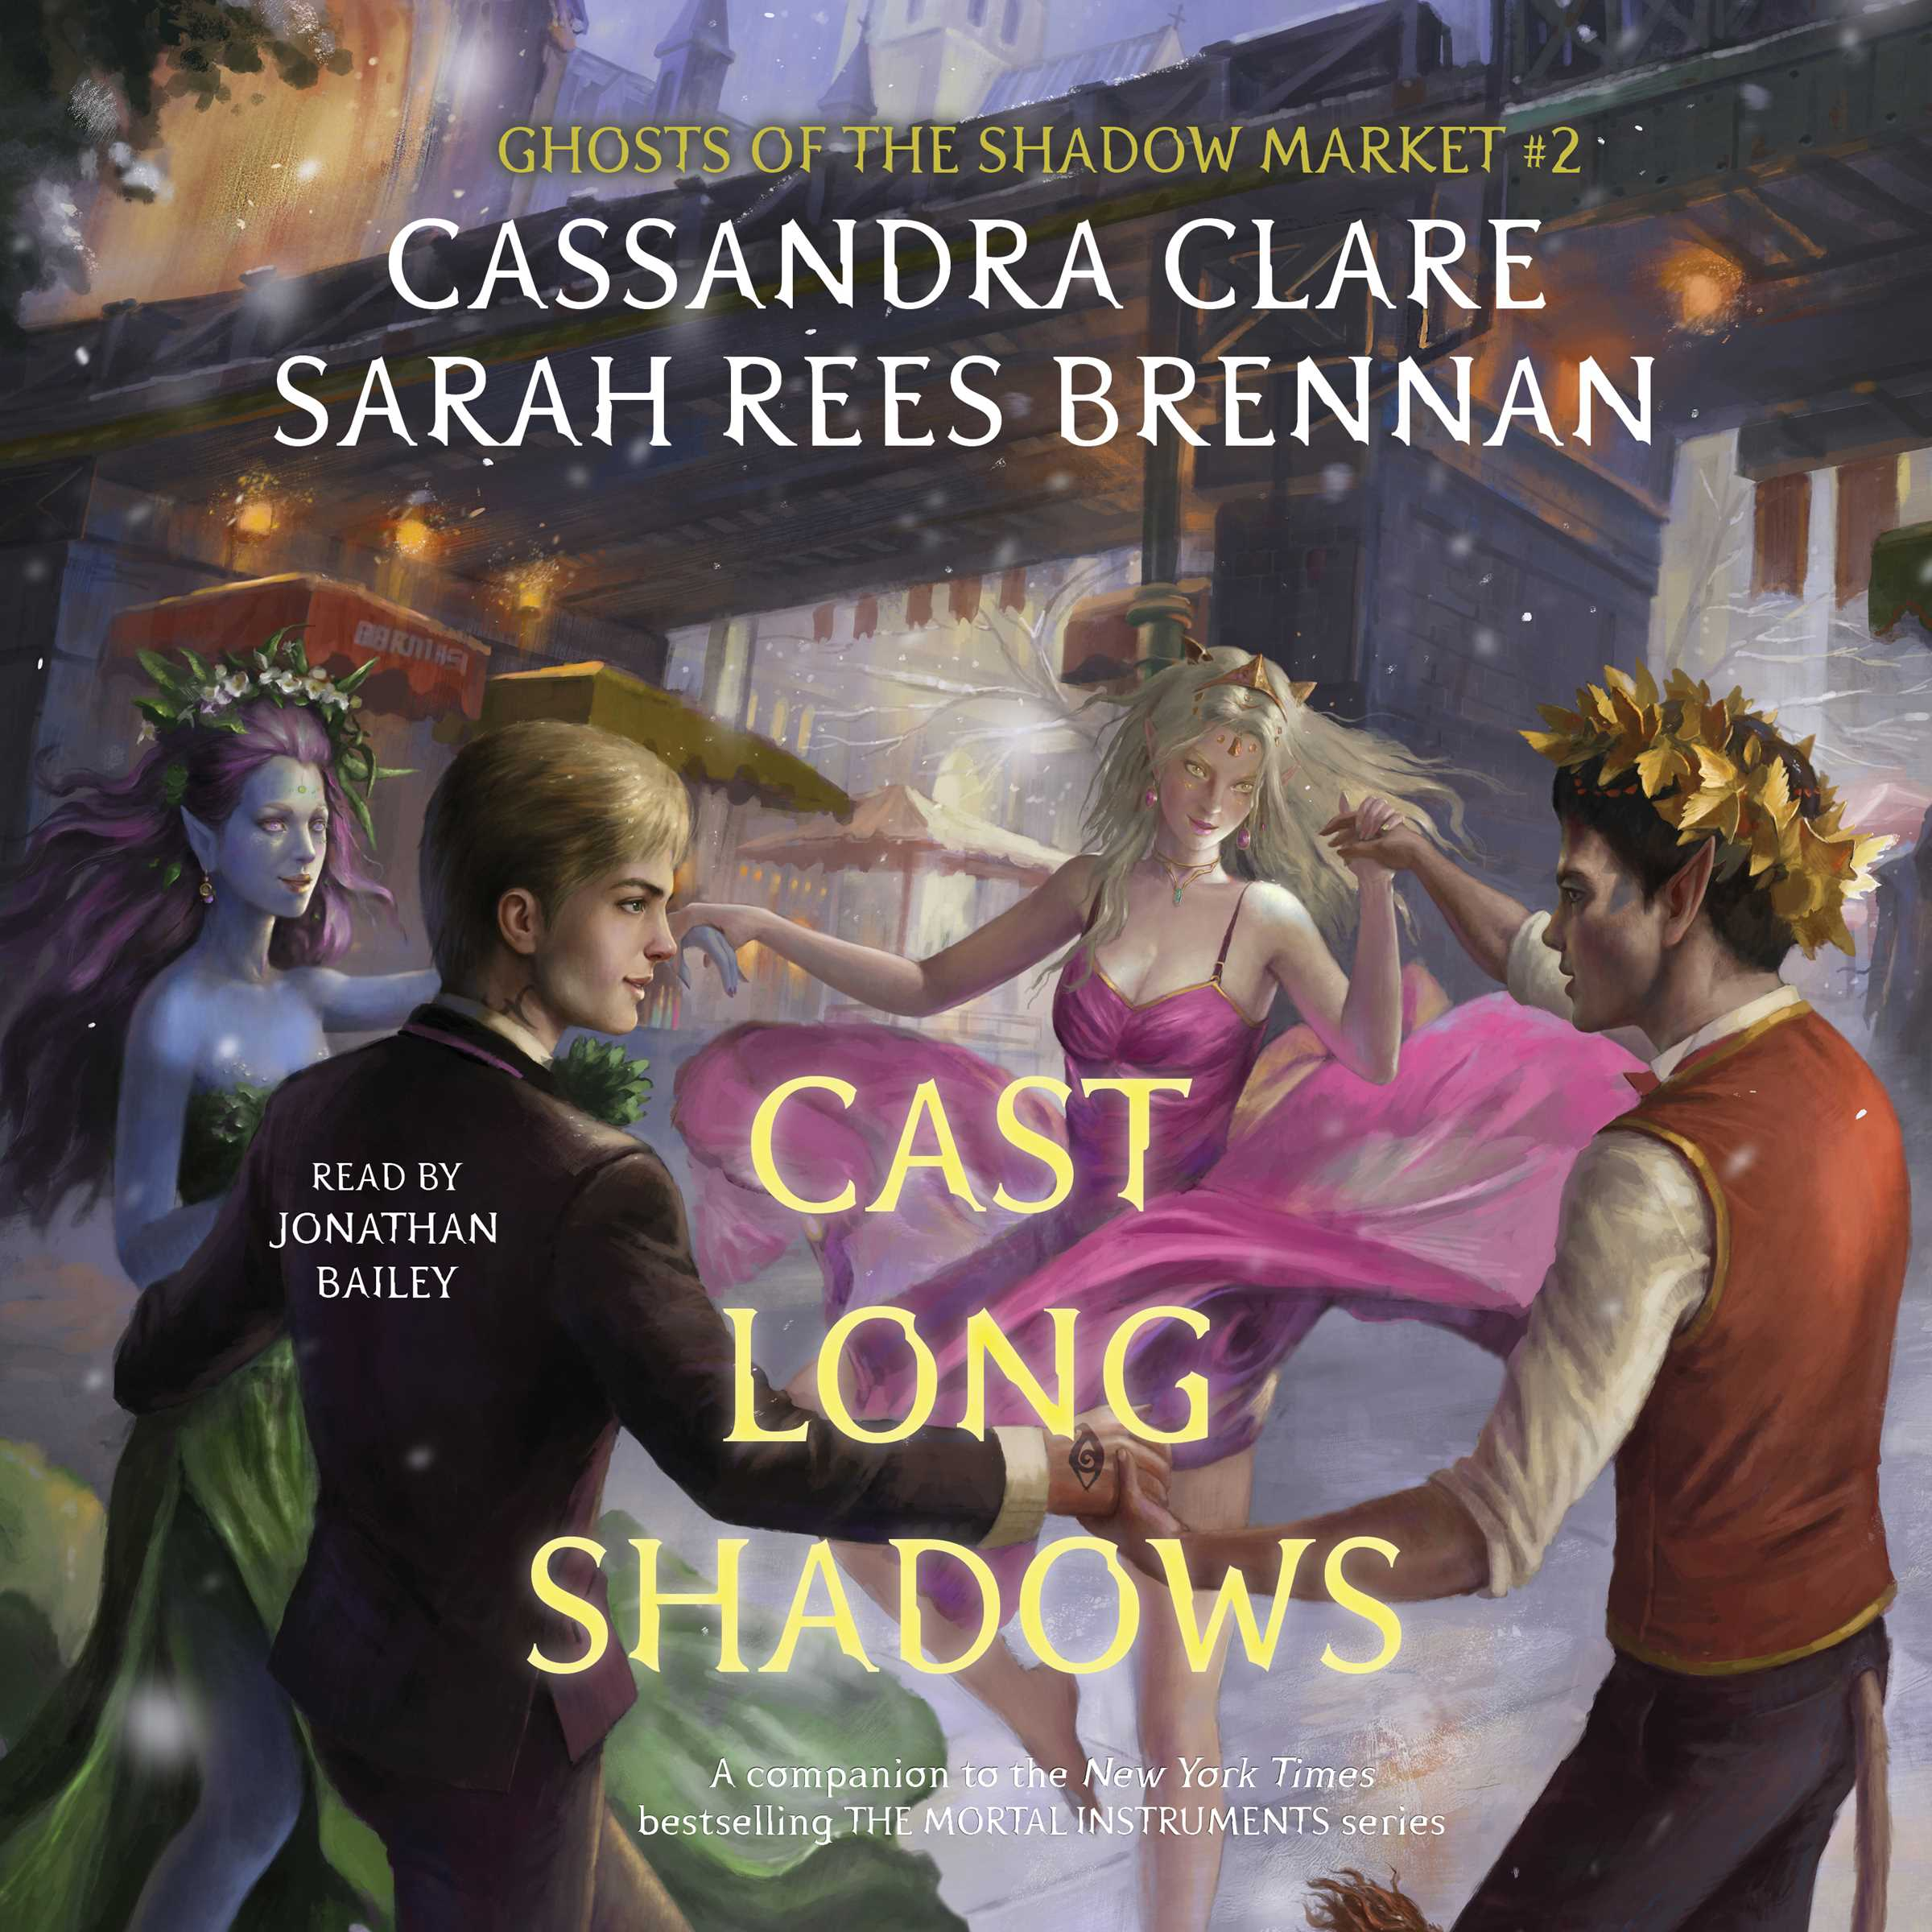 Cast Long Shadows (Audio)